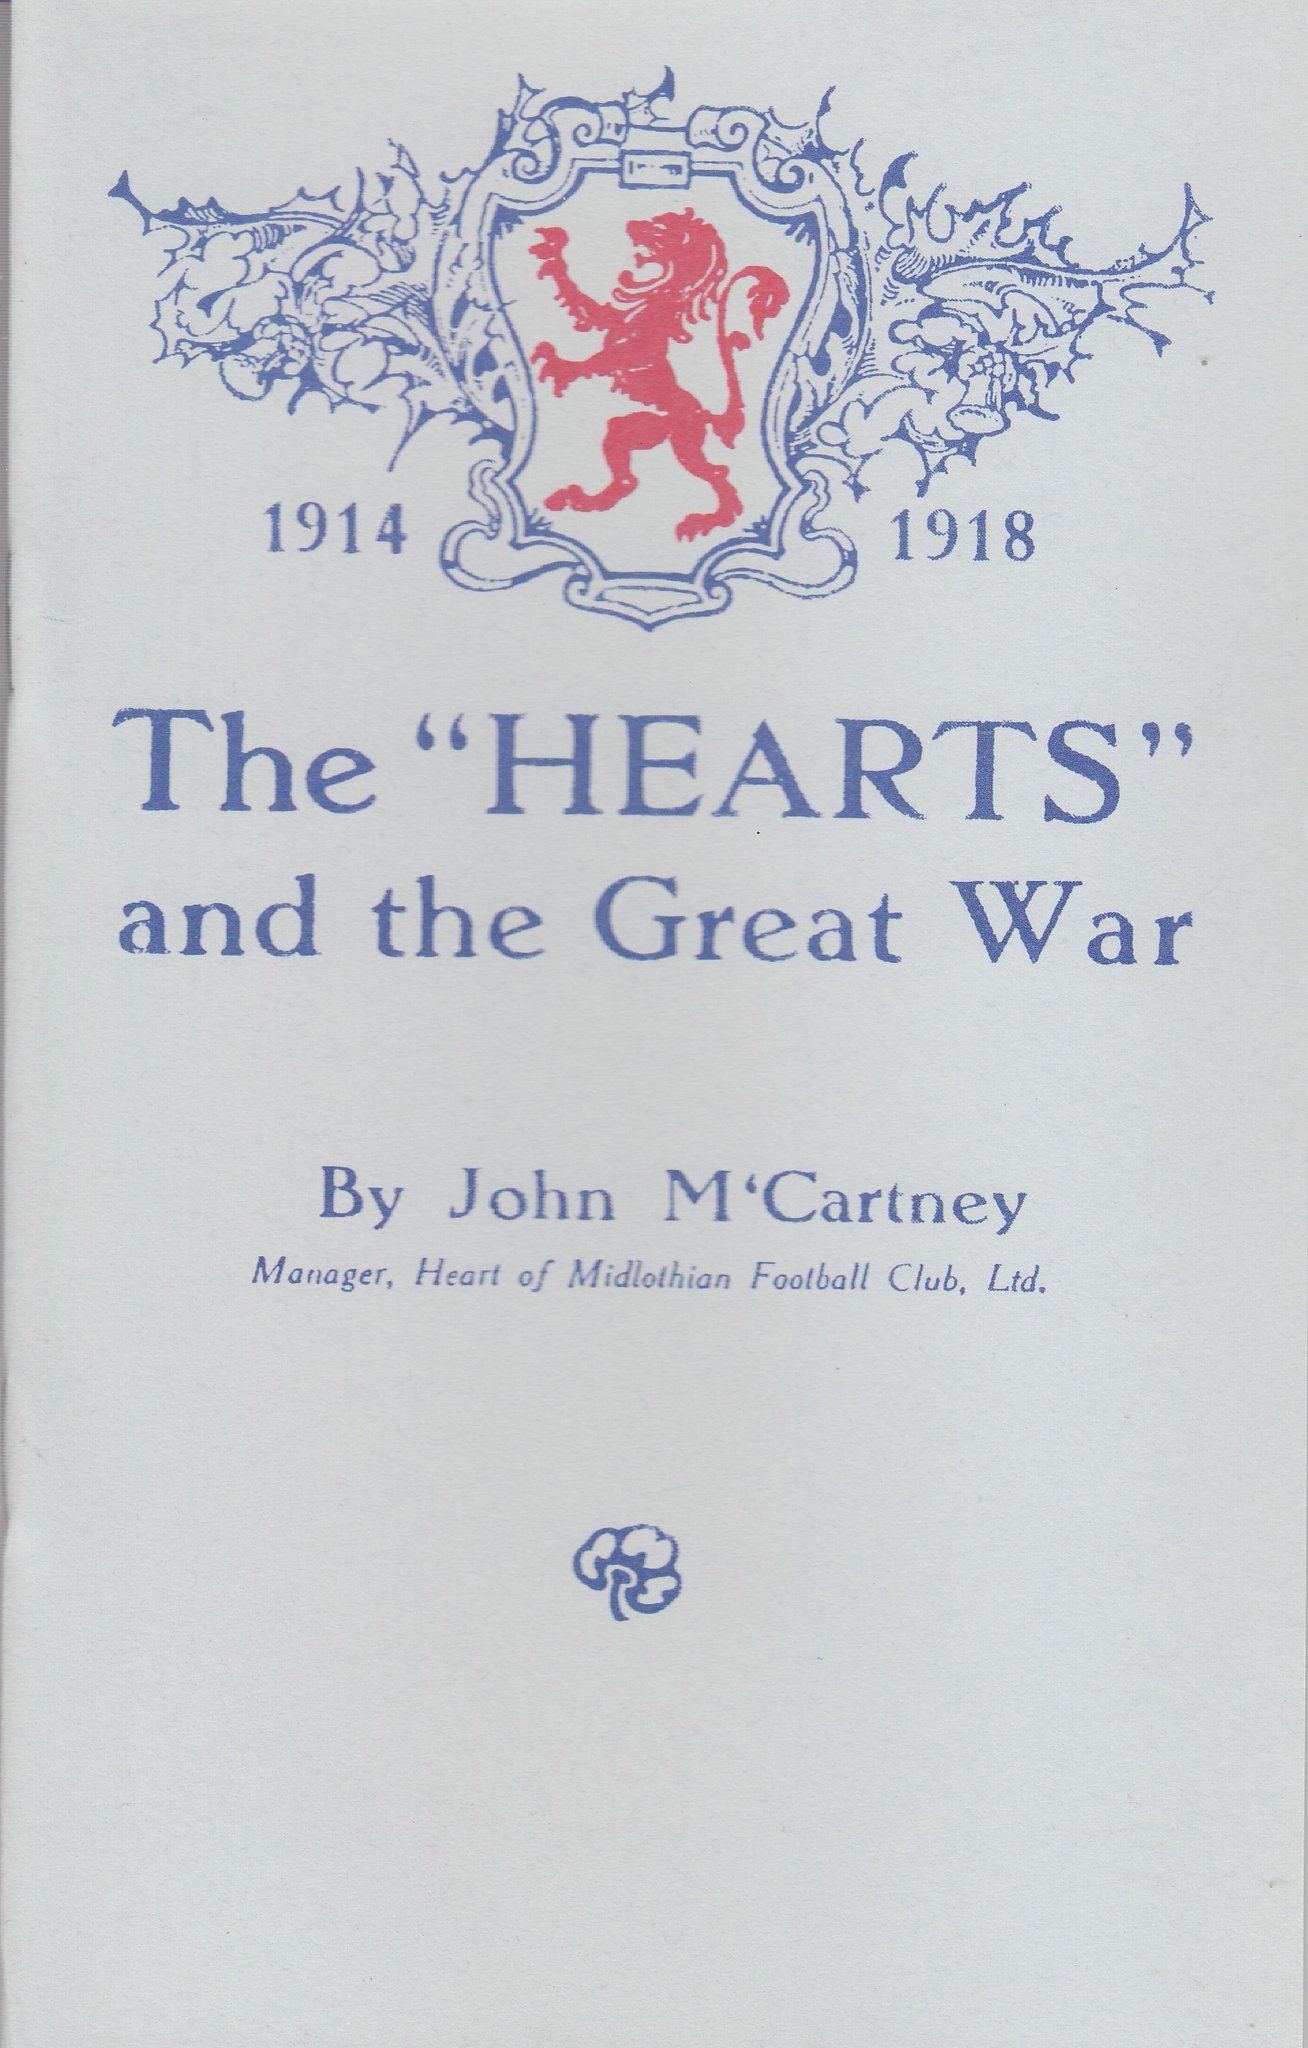 HEARTS and the Great War